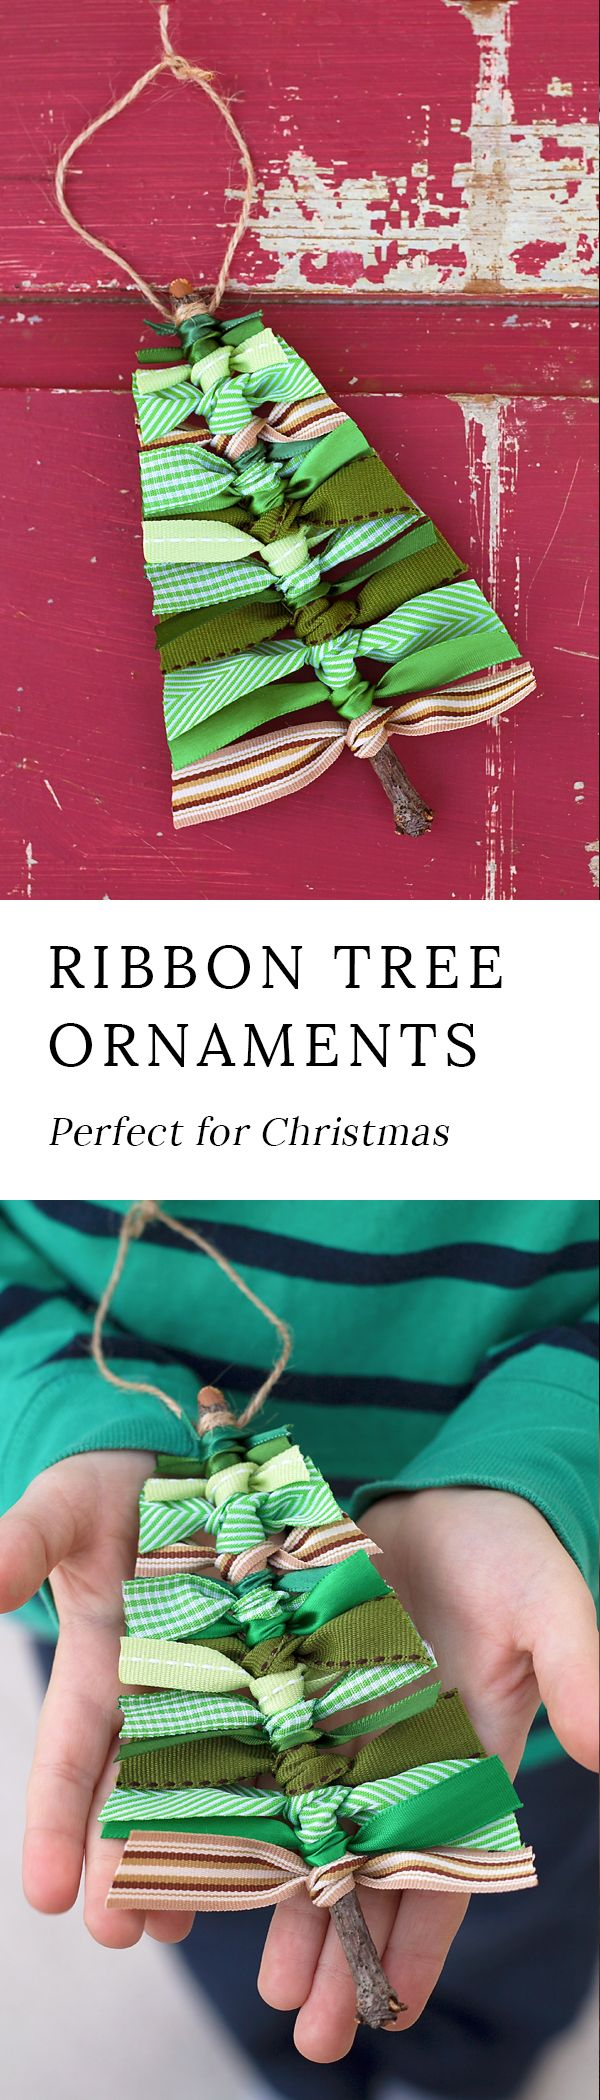 Use sticks and scraps of green ribbon to make this rustic Scrap Ribbon Tree Ornament.  It's the perfect homemade Christmas ornament for kids! #christmas #christmasornaments #christmastree